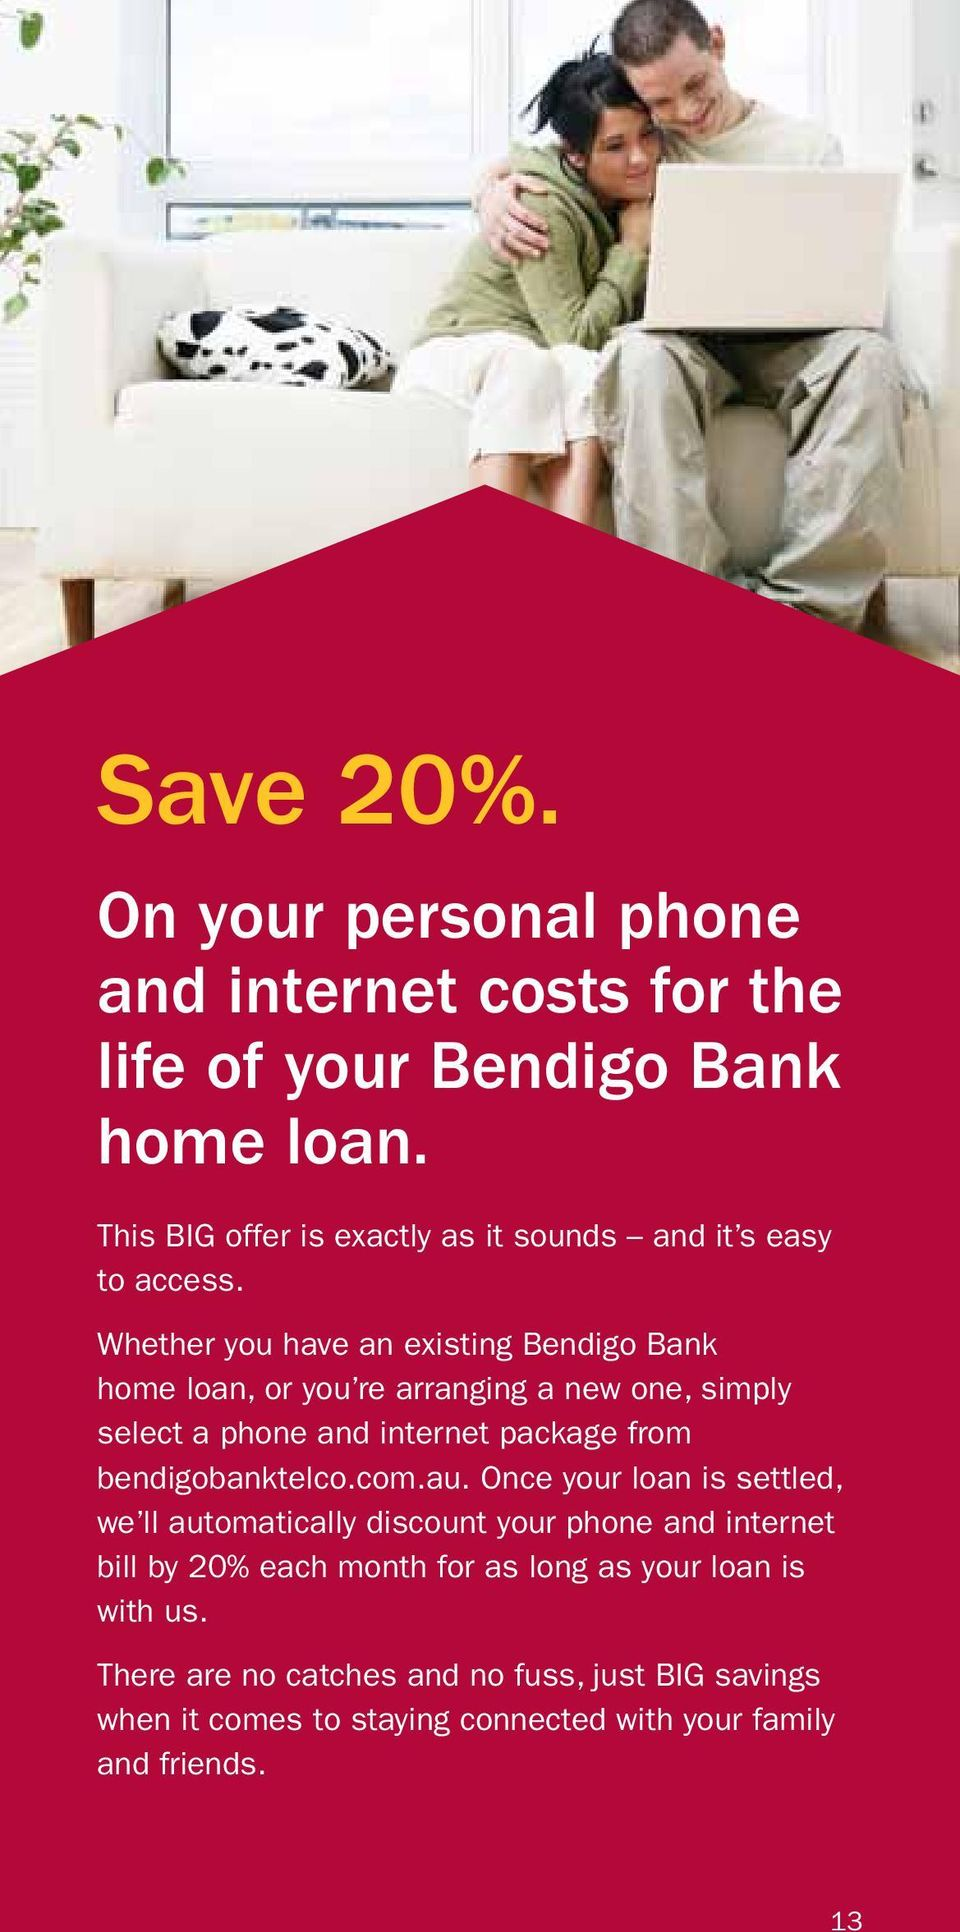 Whether you have an existing Bendigo Bank home loan, or you re arranging a new one, simply select a phone and internet package from